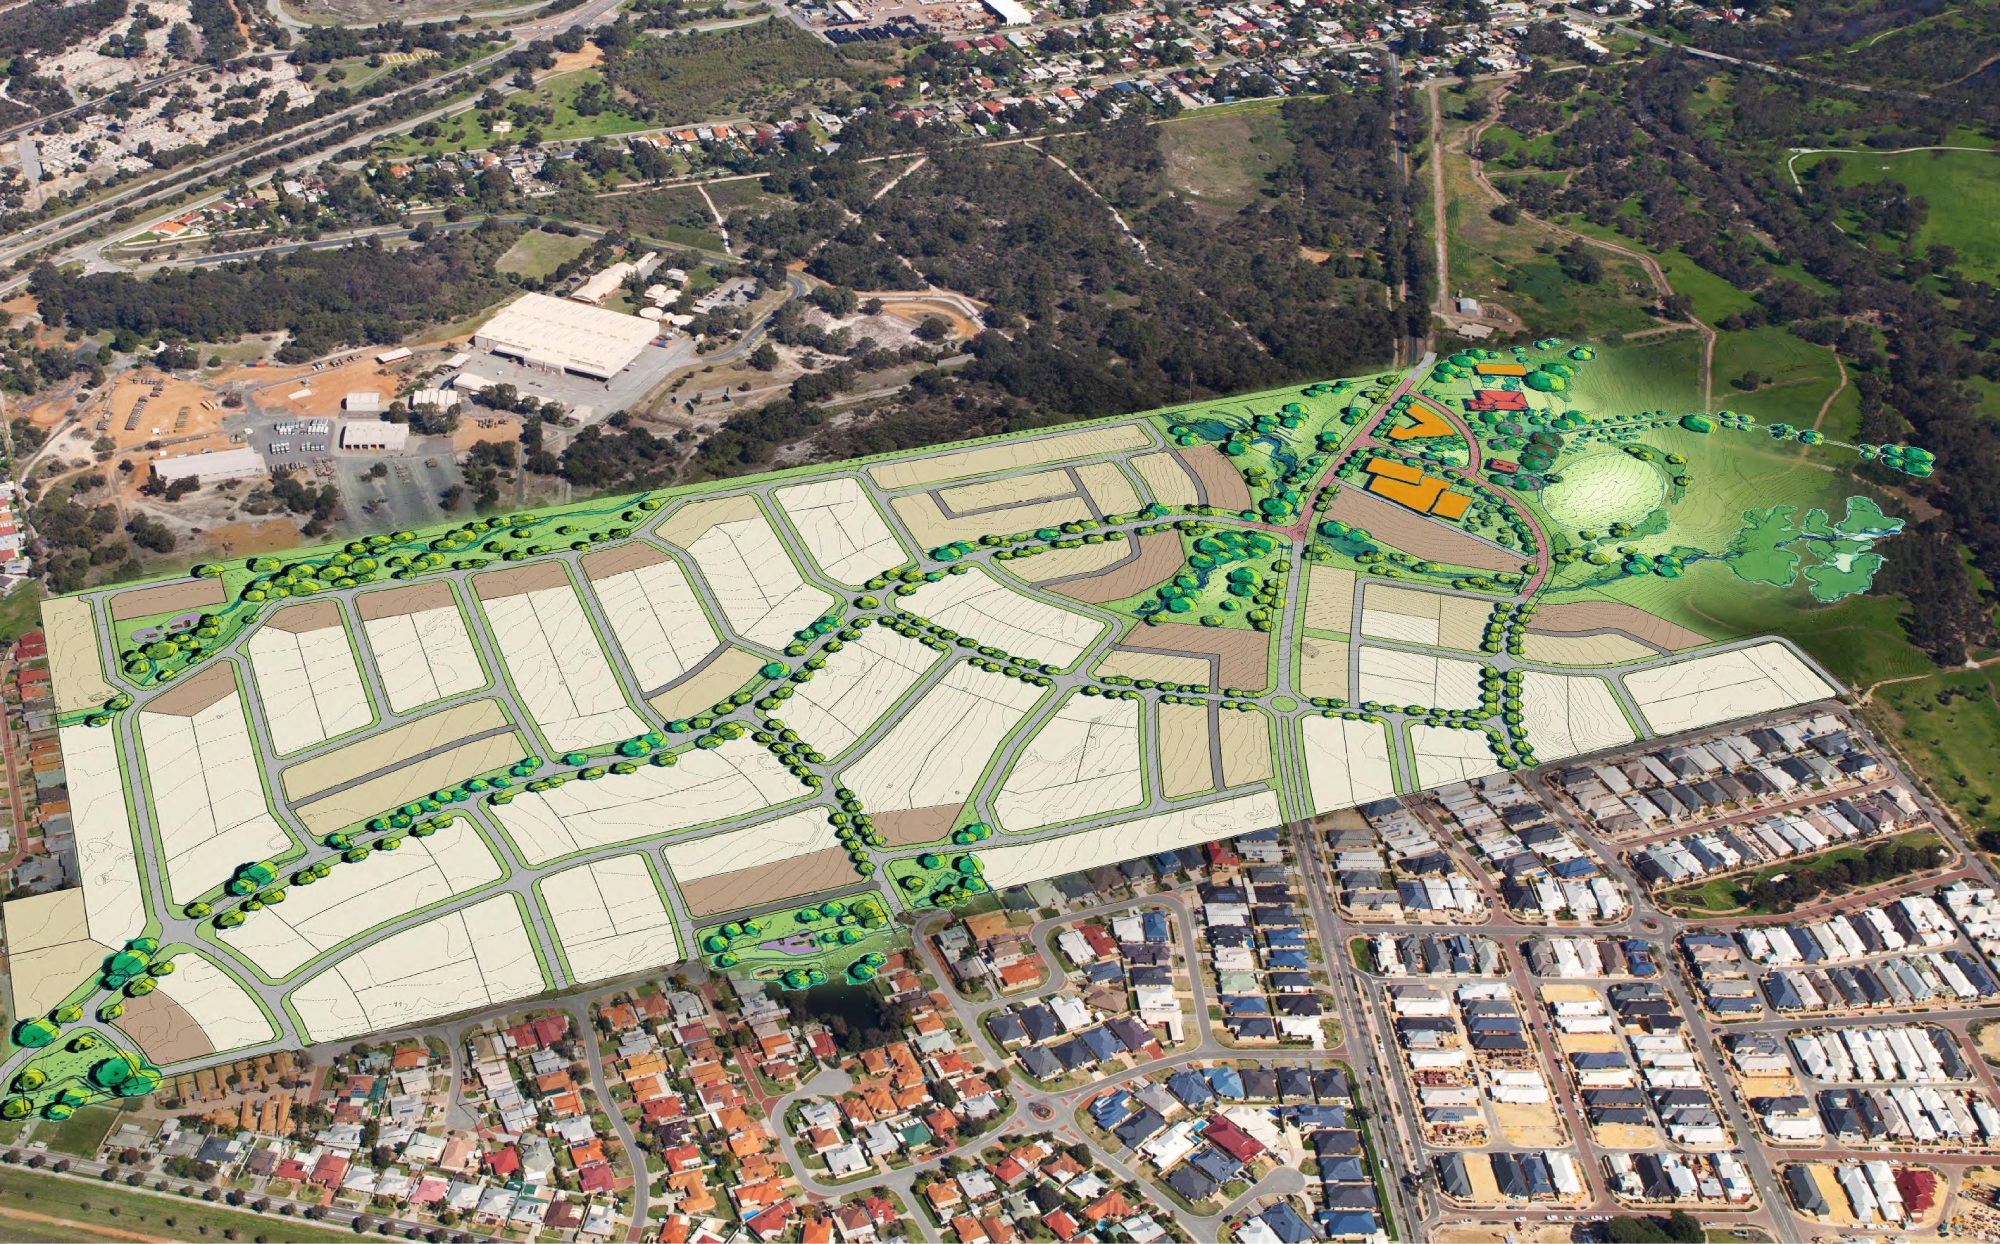 The proposal for the controversial Rosehill Waters Estate development in South Guildford is now closer to becoming a reality.